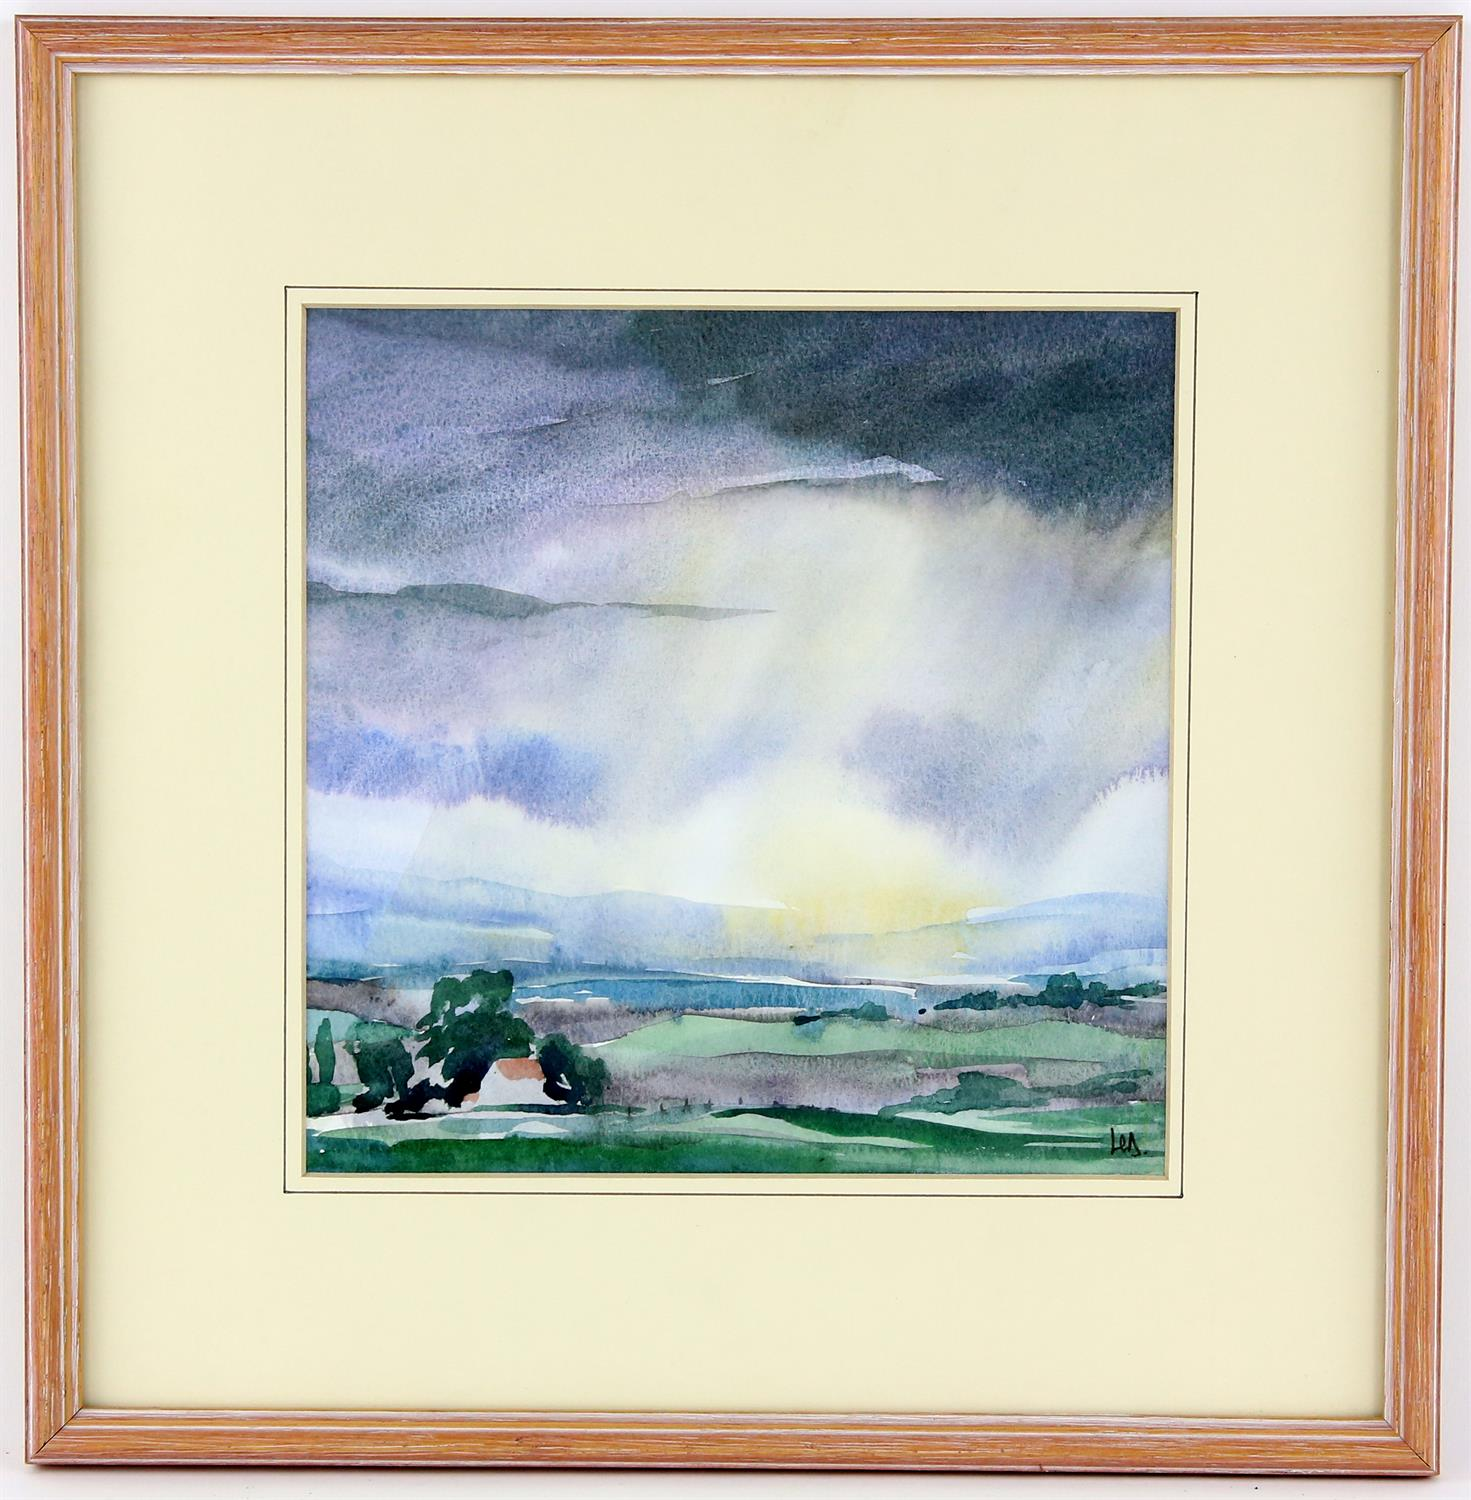 Landscape with sky, watercolour on paper, signed with monogram HD? lower right. 22.5 x 22.5cm. - Image 2 of 2